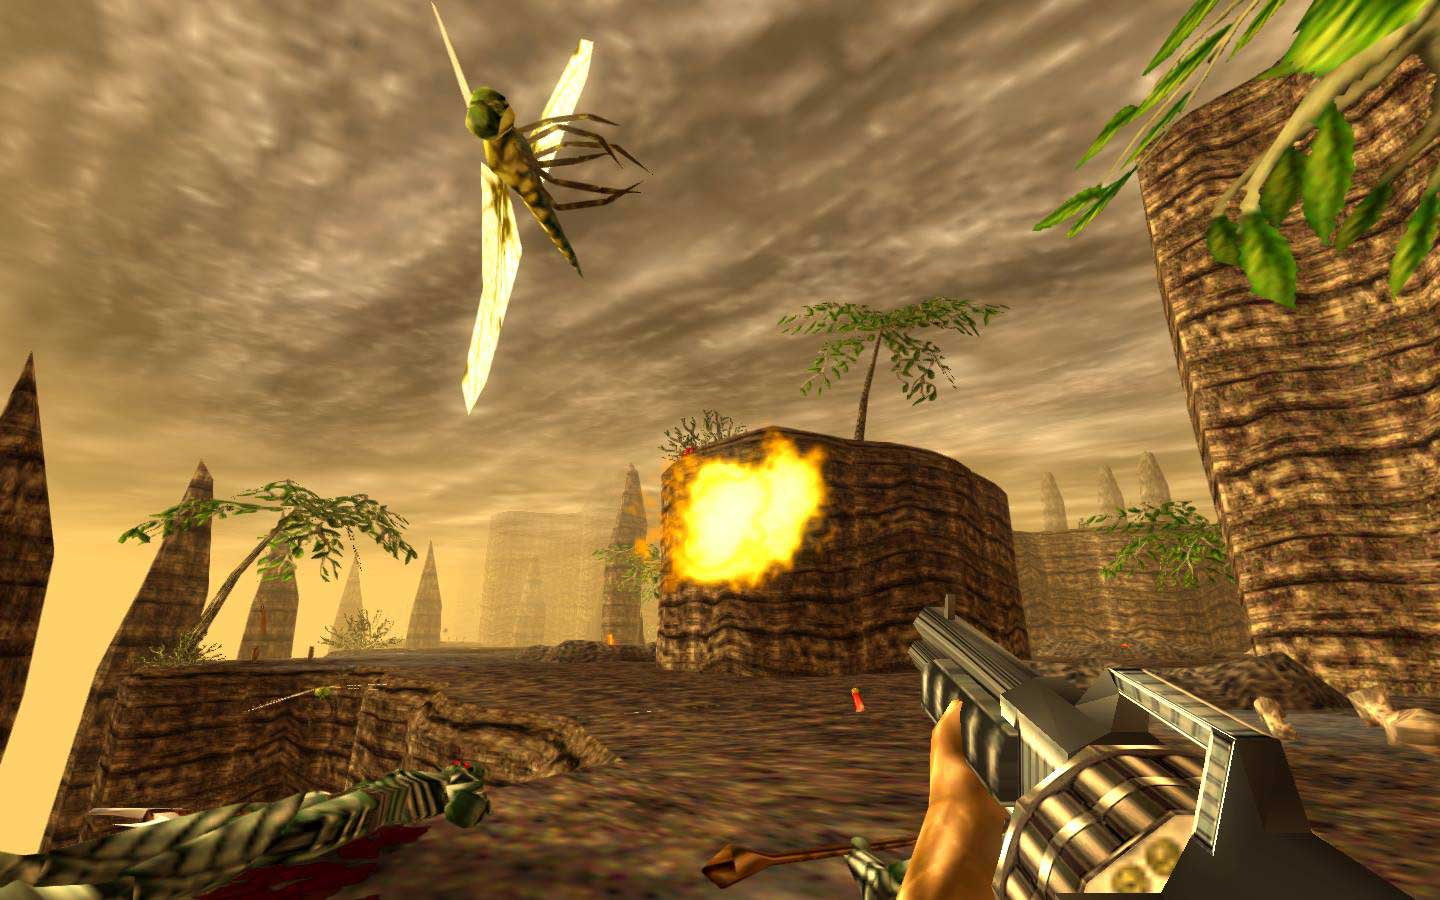 Ps4 Games Hd Wallpapers Get A Load Of The Draw Distance On The Turok Remaster Vg247